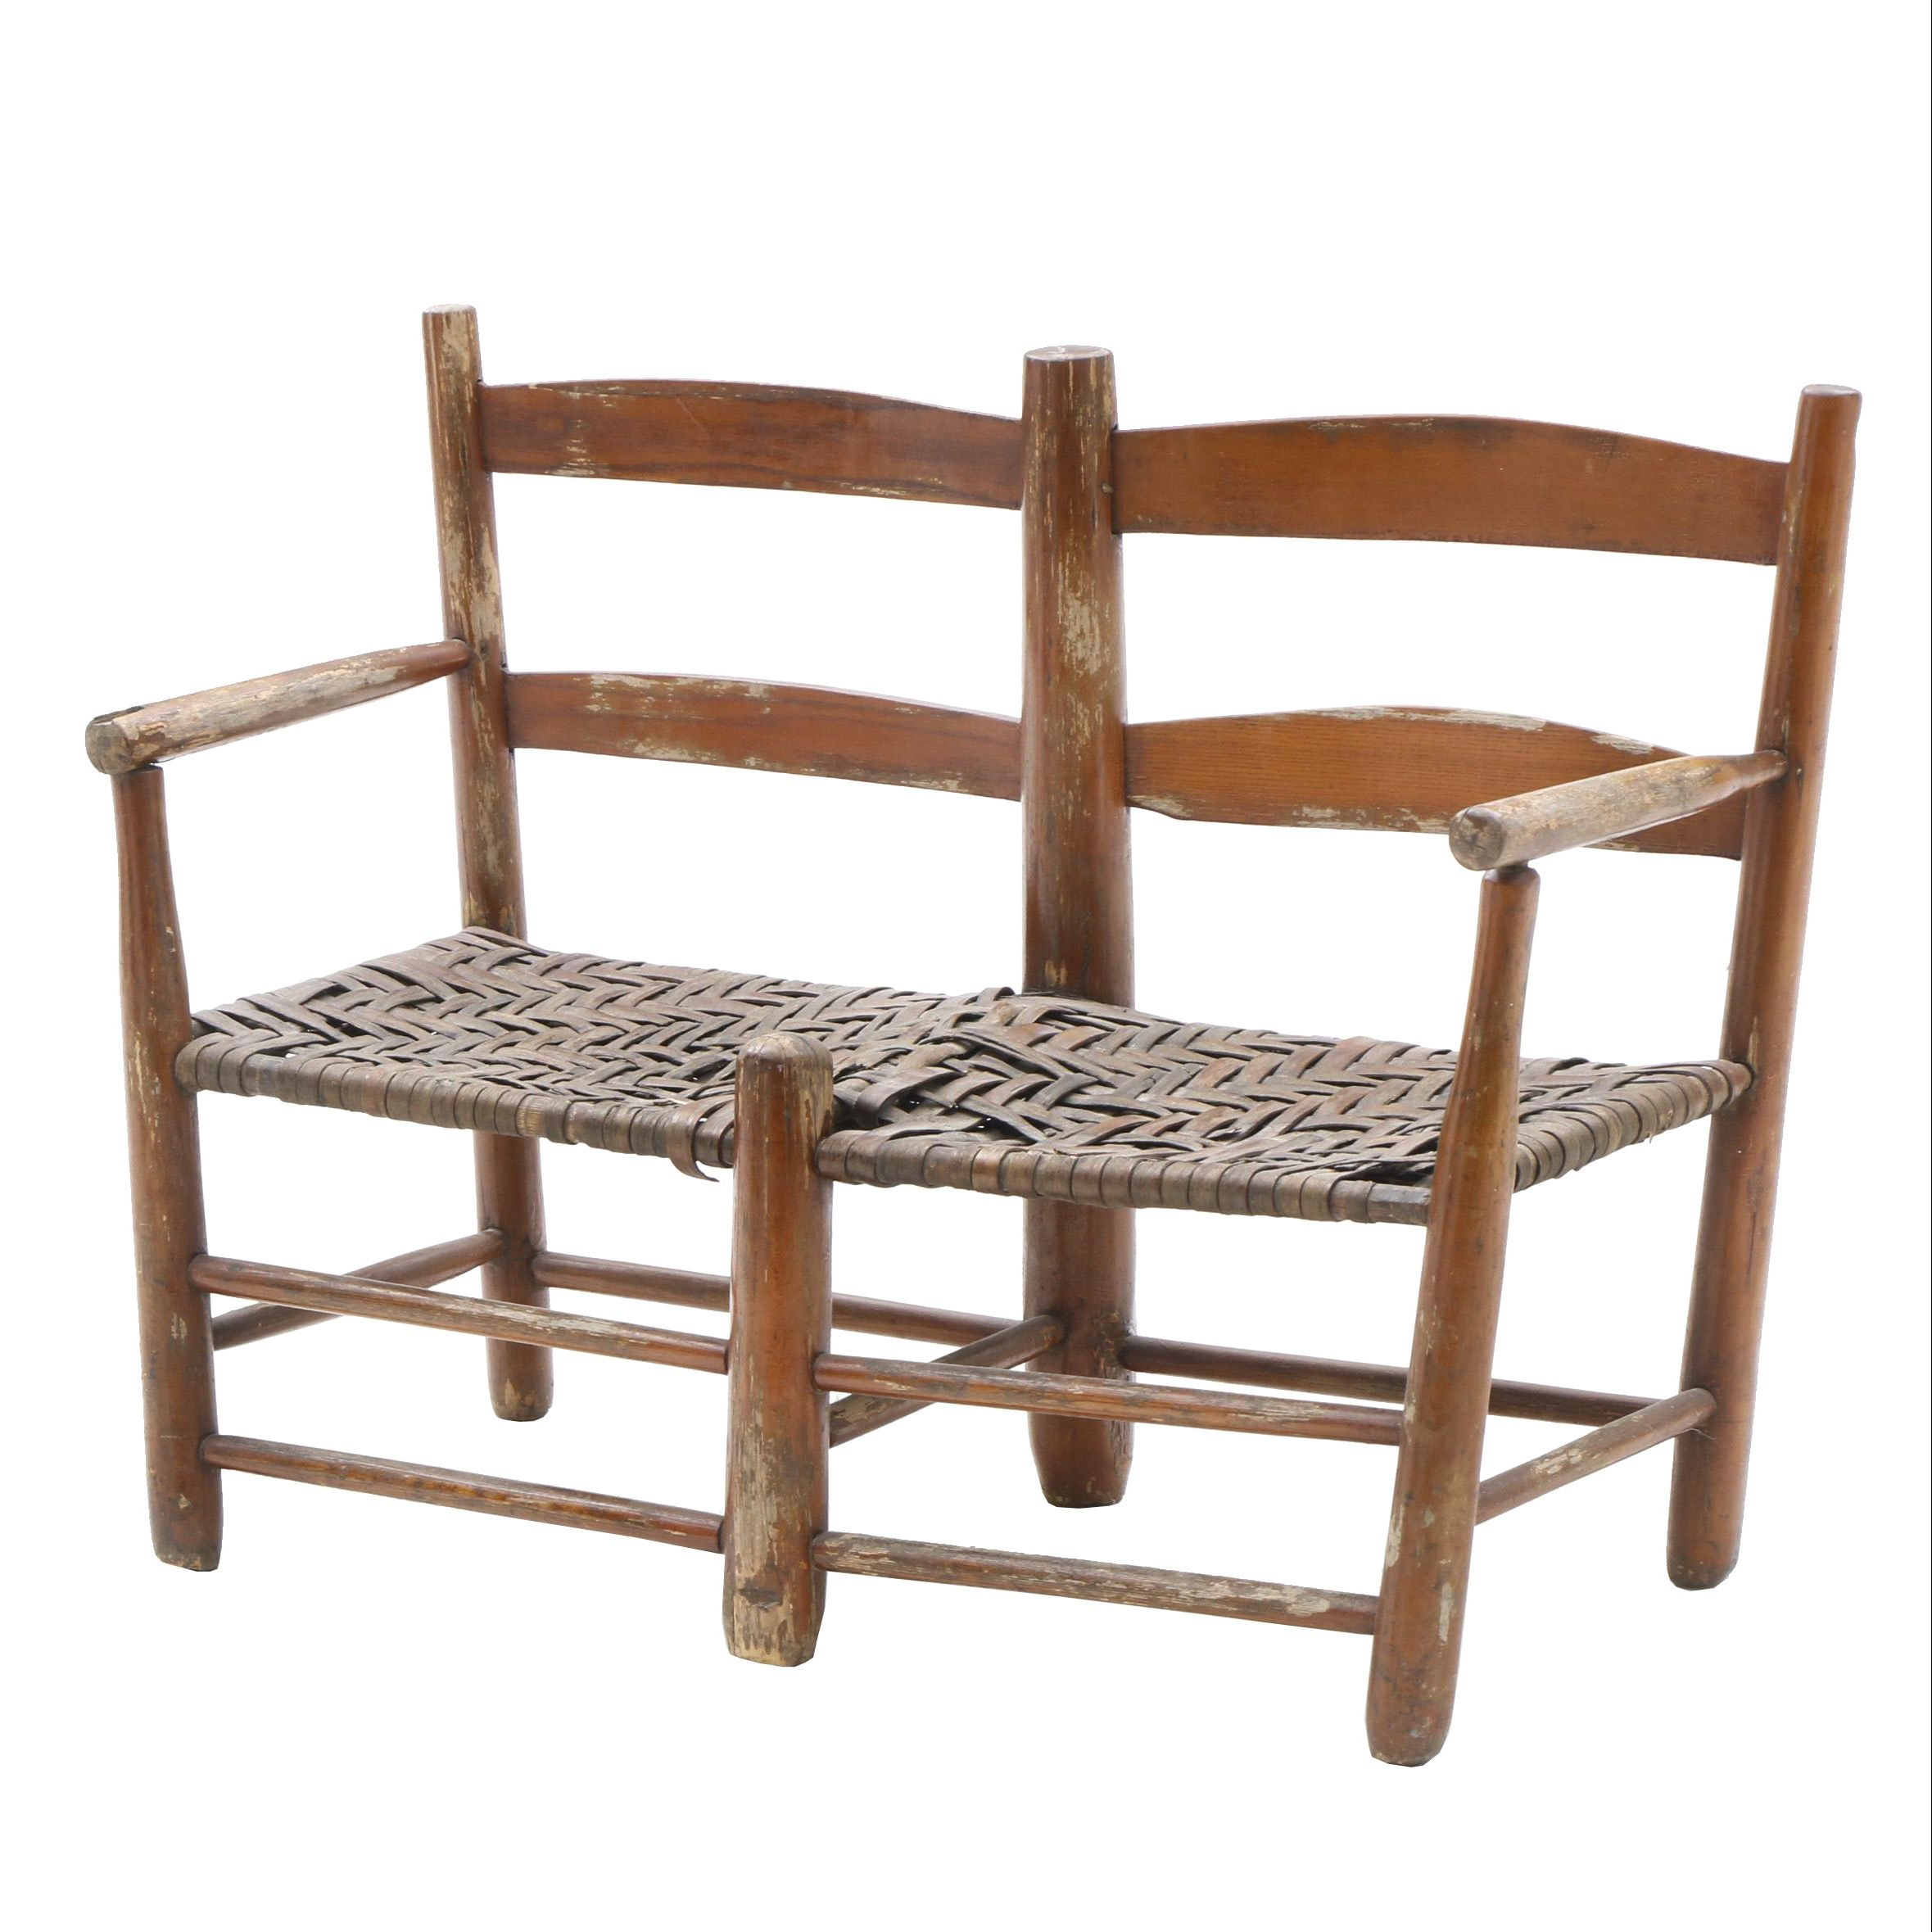 Early 20th Century Child's Rustic Bench